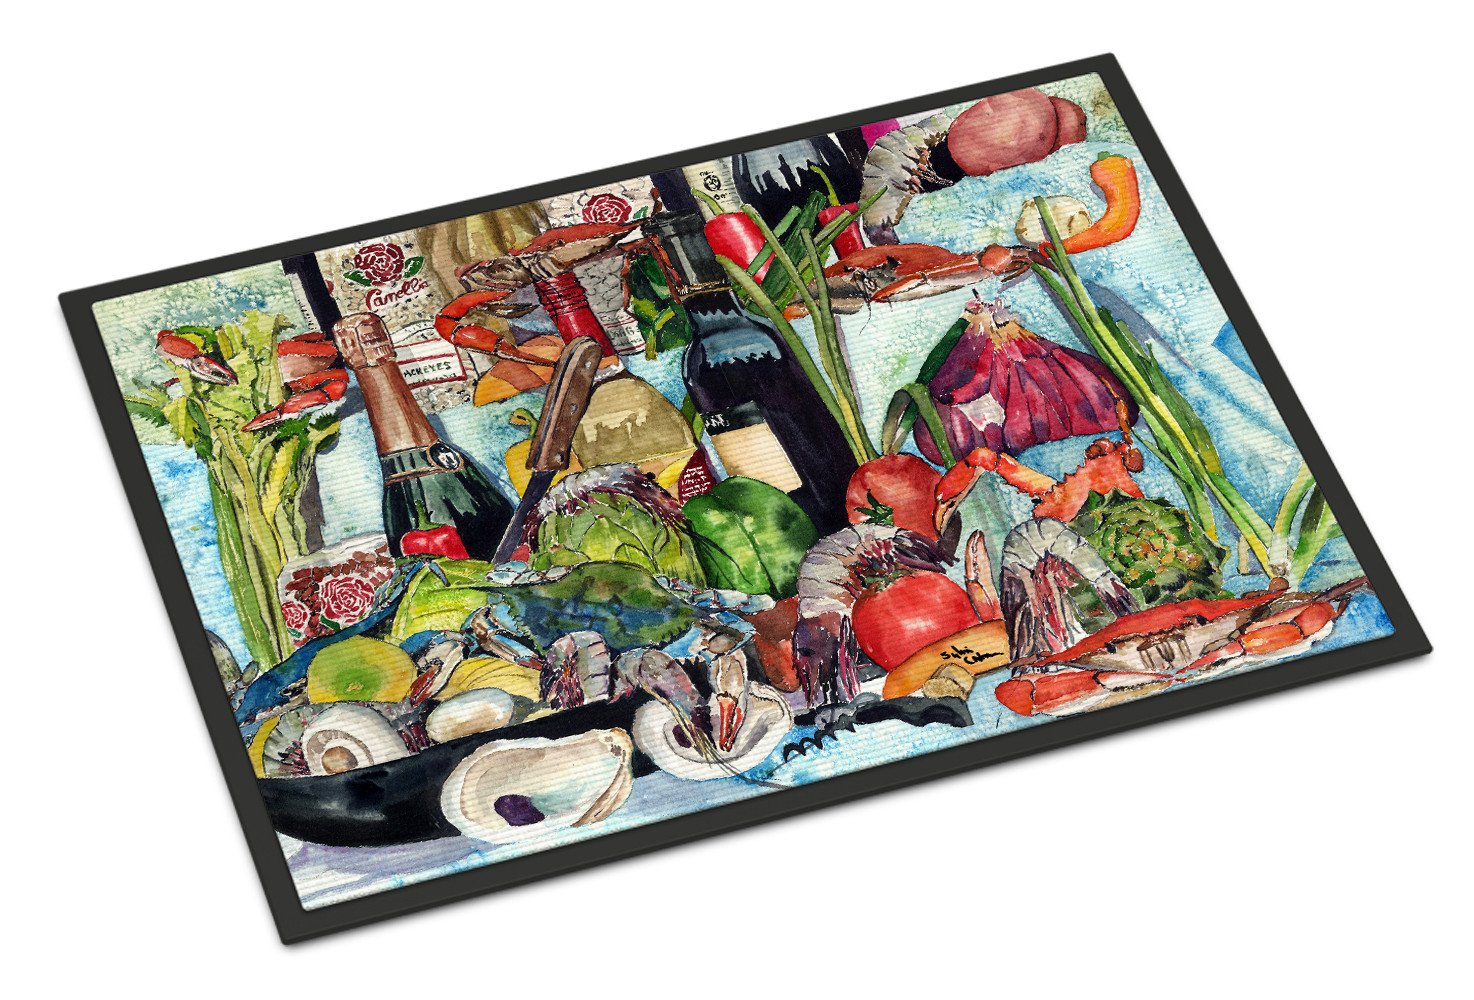 Wine Crab Shrimp and Oysters Indoor or Outdoor Mat 24x36 by Caroline's Treasures